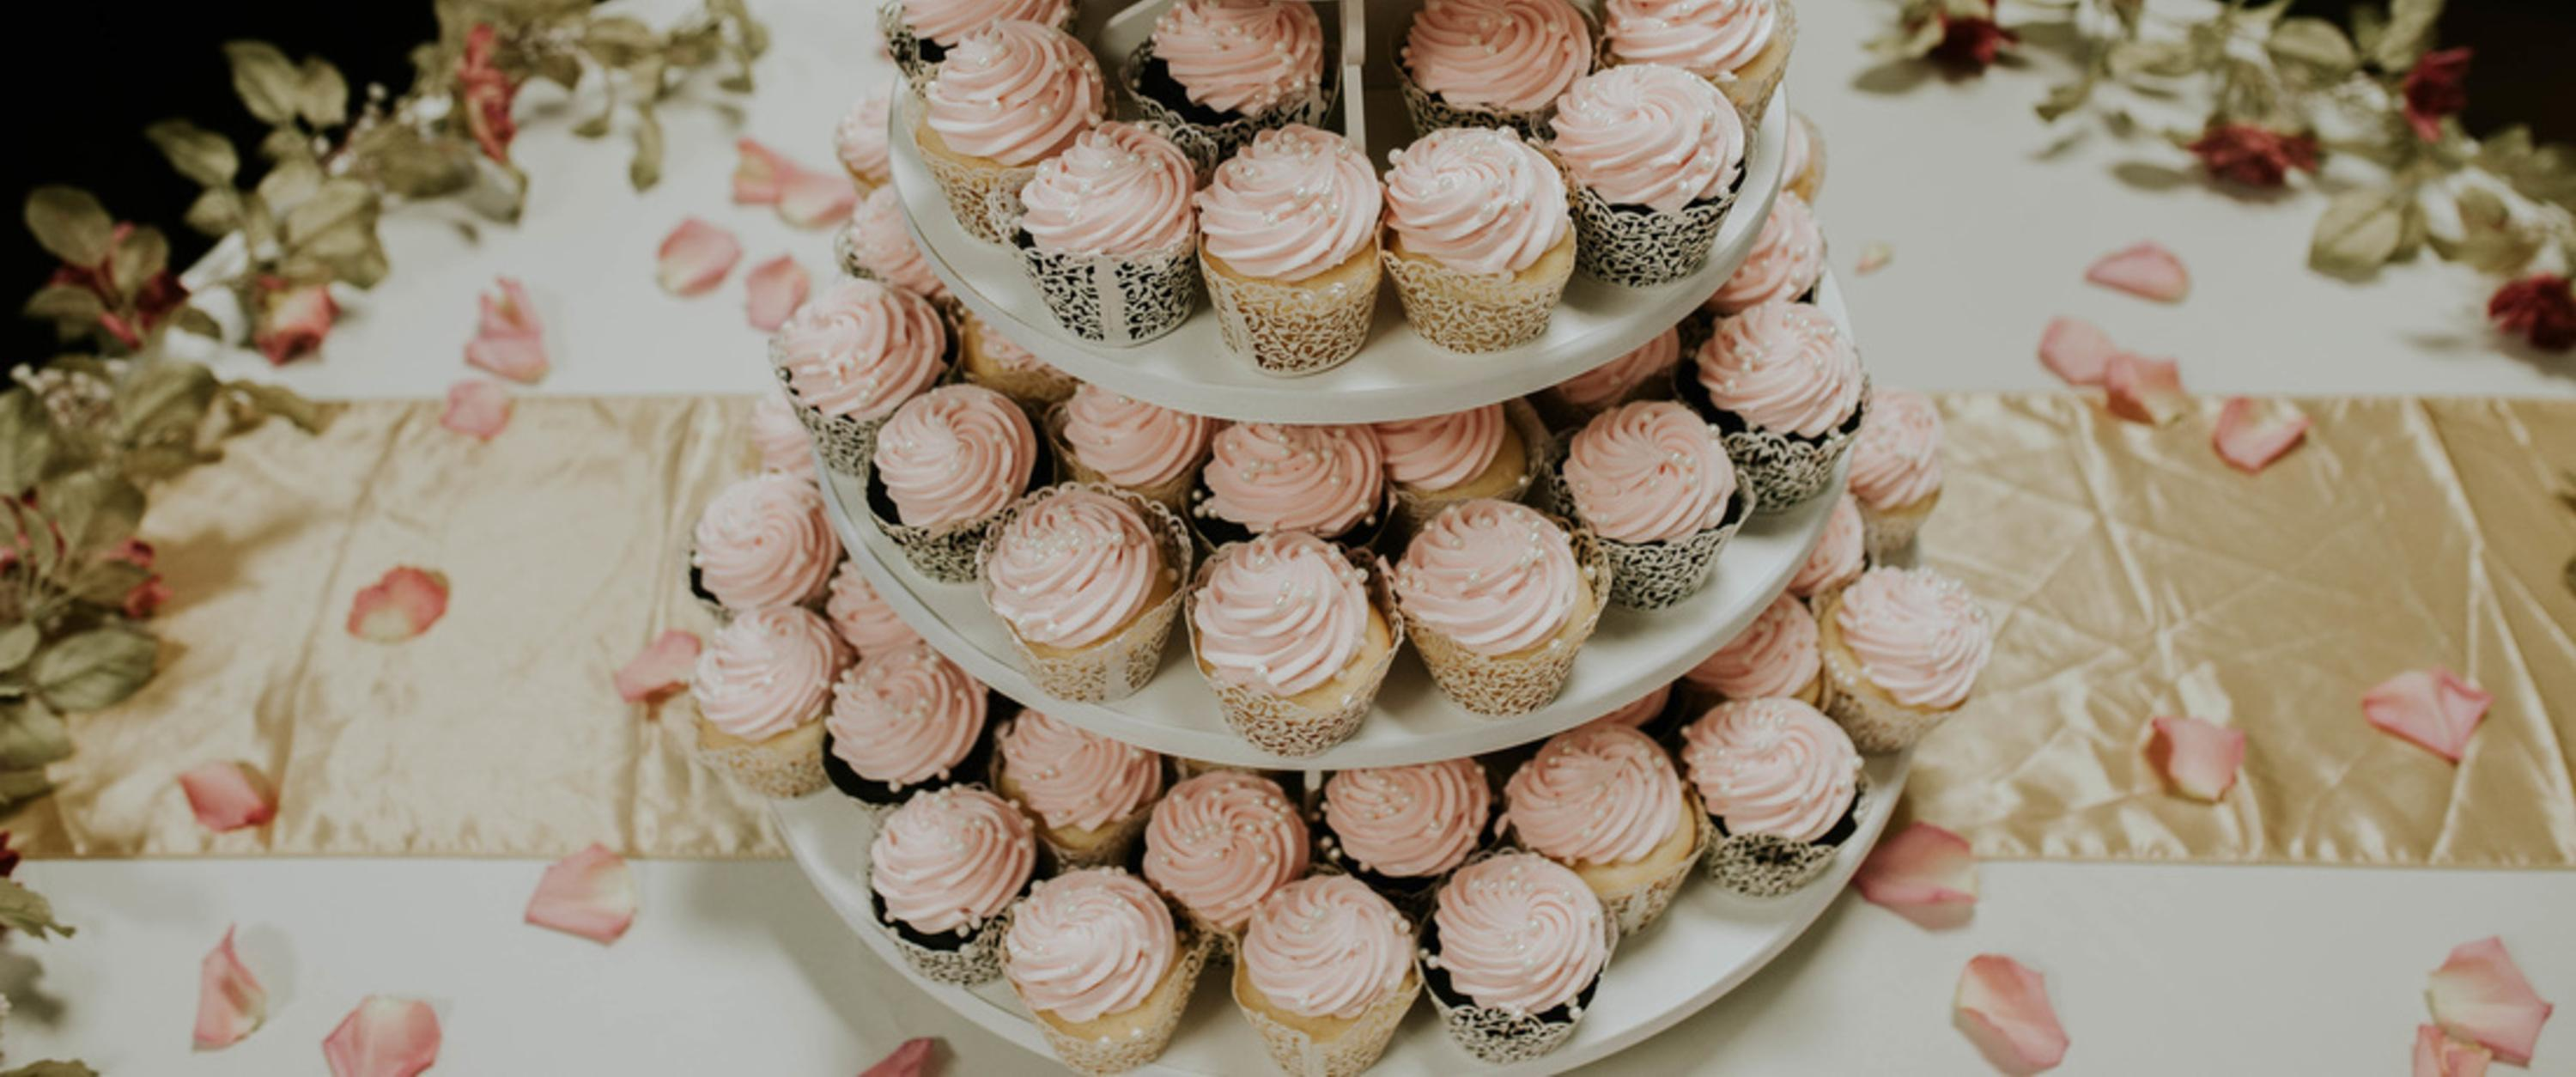 Delicate pink cupcakes with pearls and floral accents